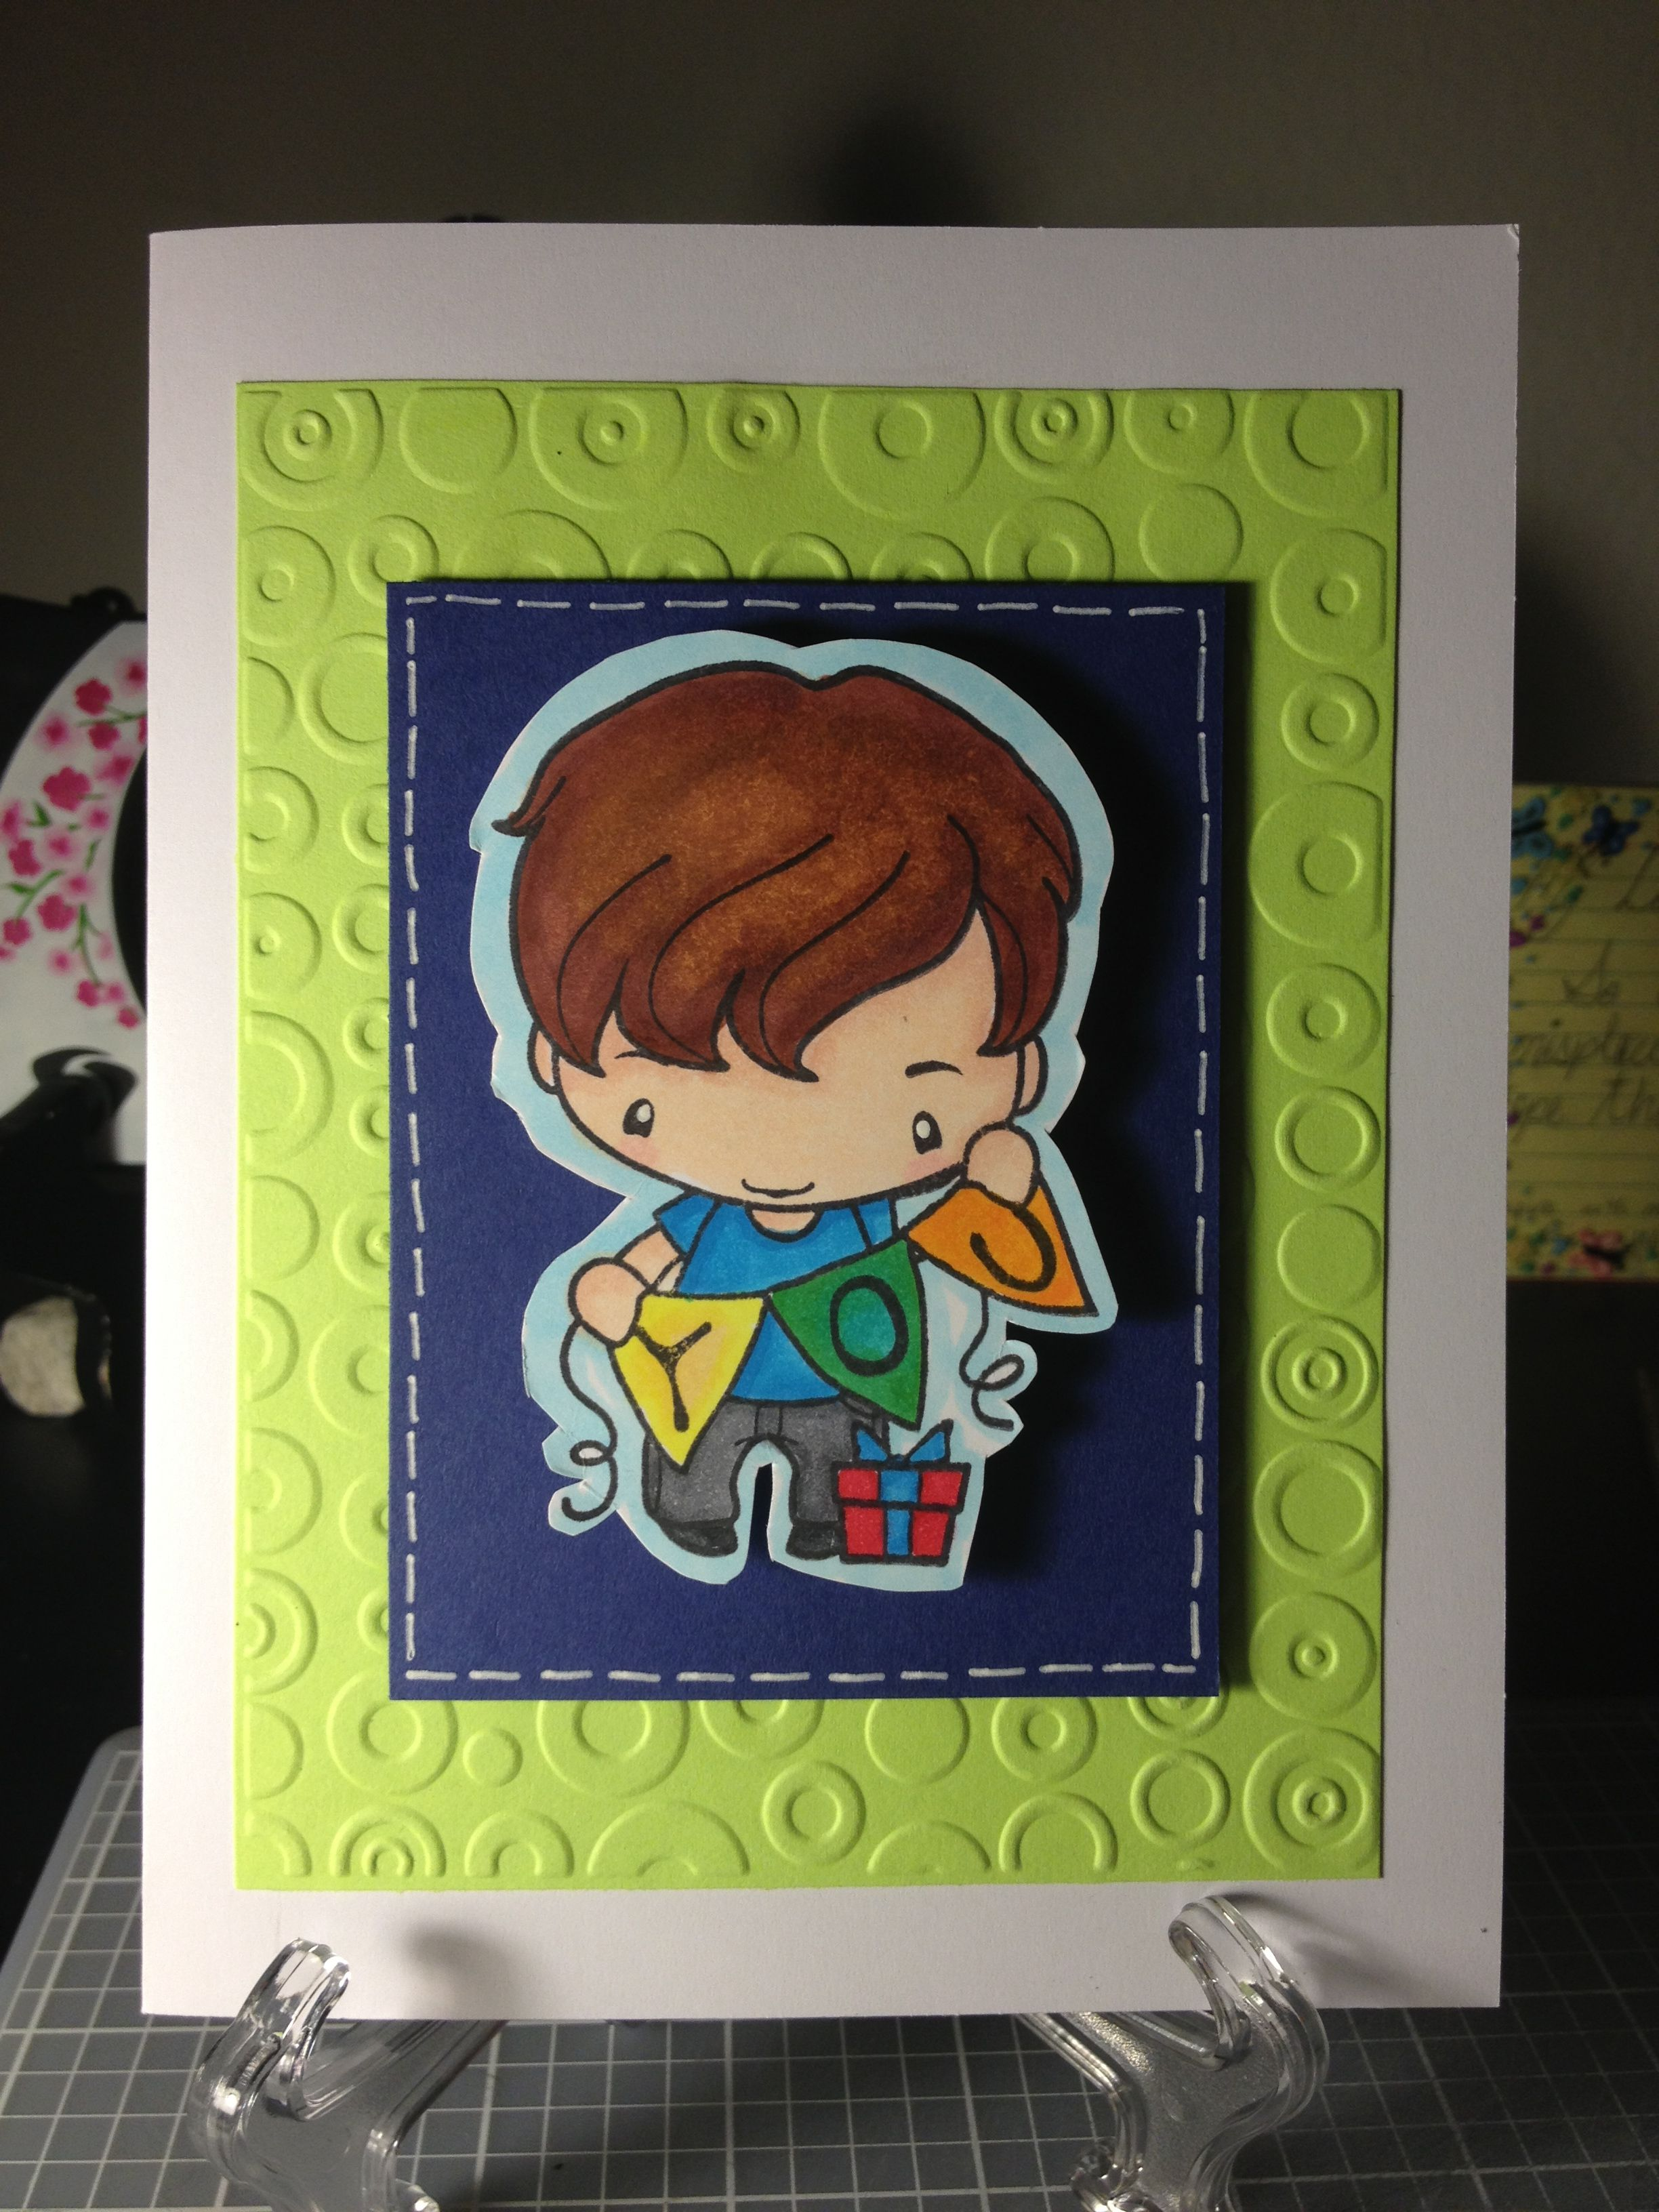 HoneyBallende http://etsy.me/Lk2Bue via @Etsy.   COME CHECK THIS CUTE BOY BIRTHDAT CARD! One of a kind! Available for purchase!